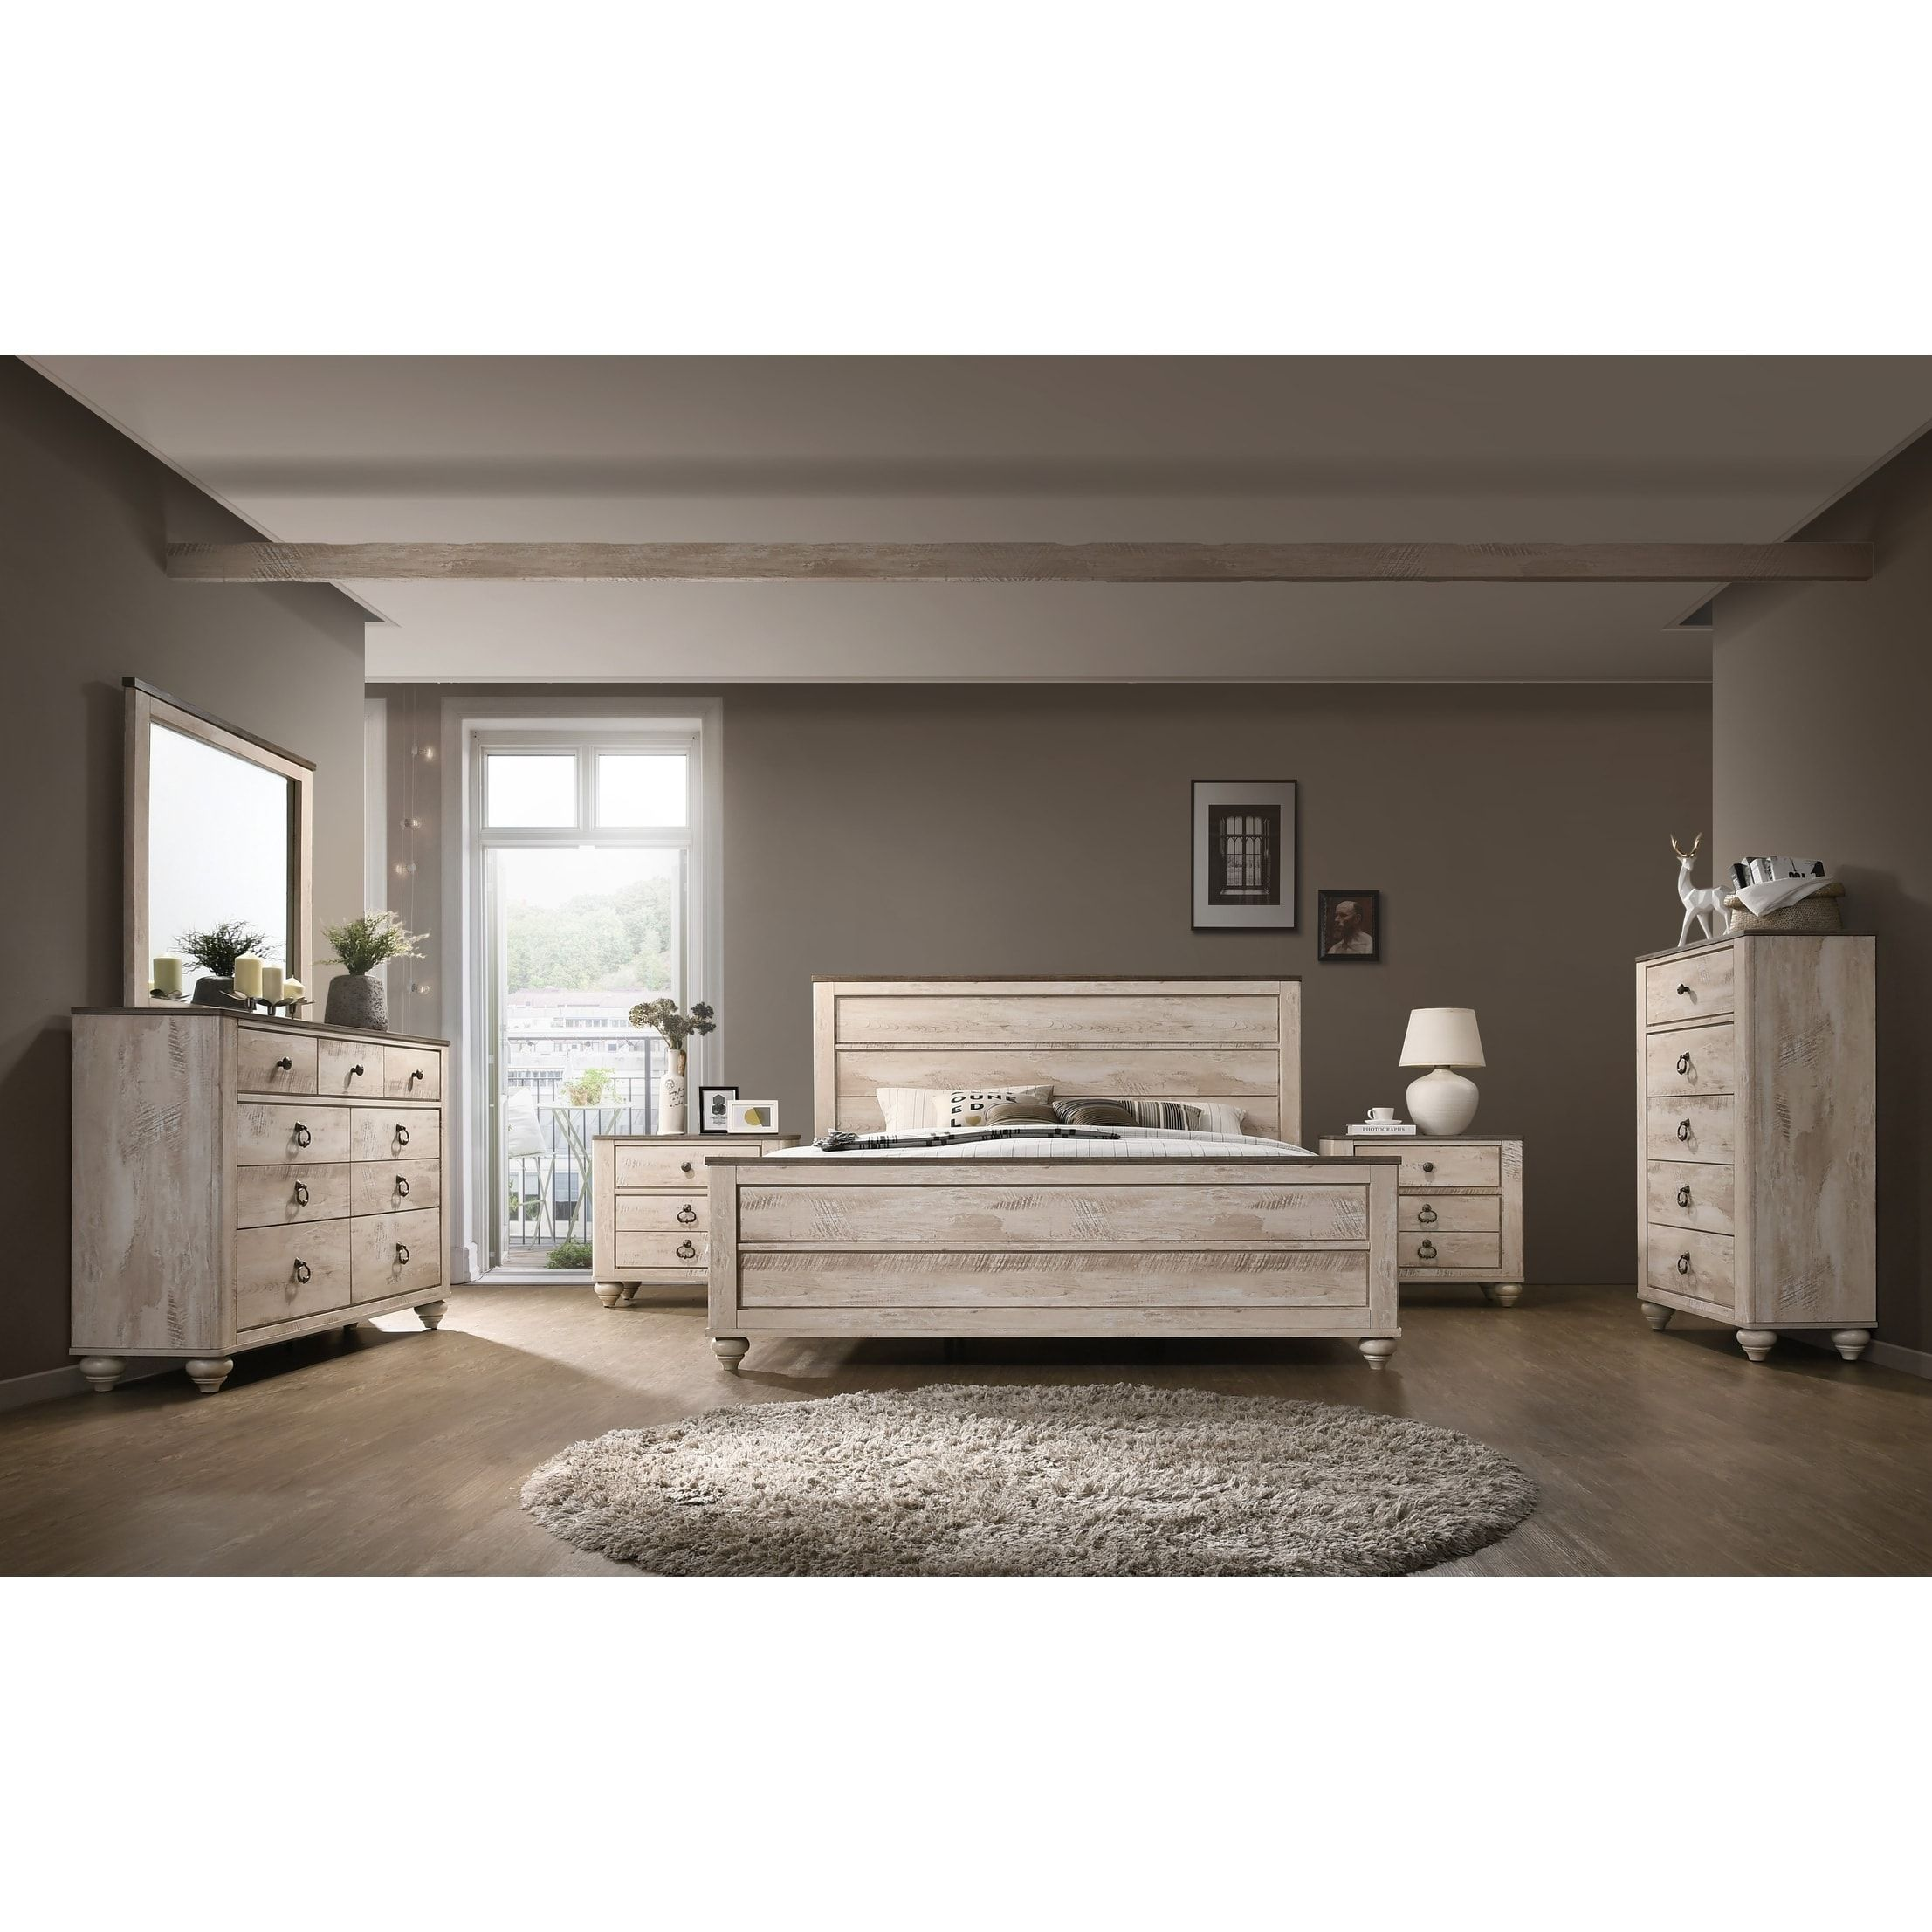 Imerland Contemporary White Wash Finish 6 Piece Bedroom Set Queen Beige King Bedroom Sets Bedroom Set Bedroom Sets